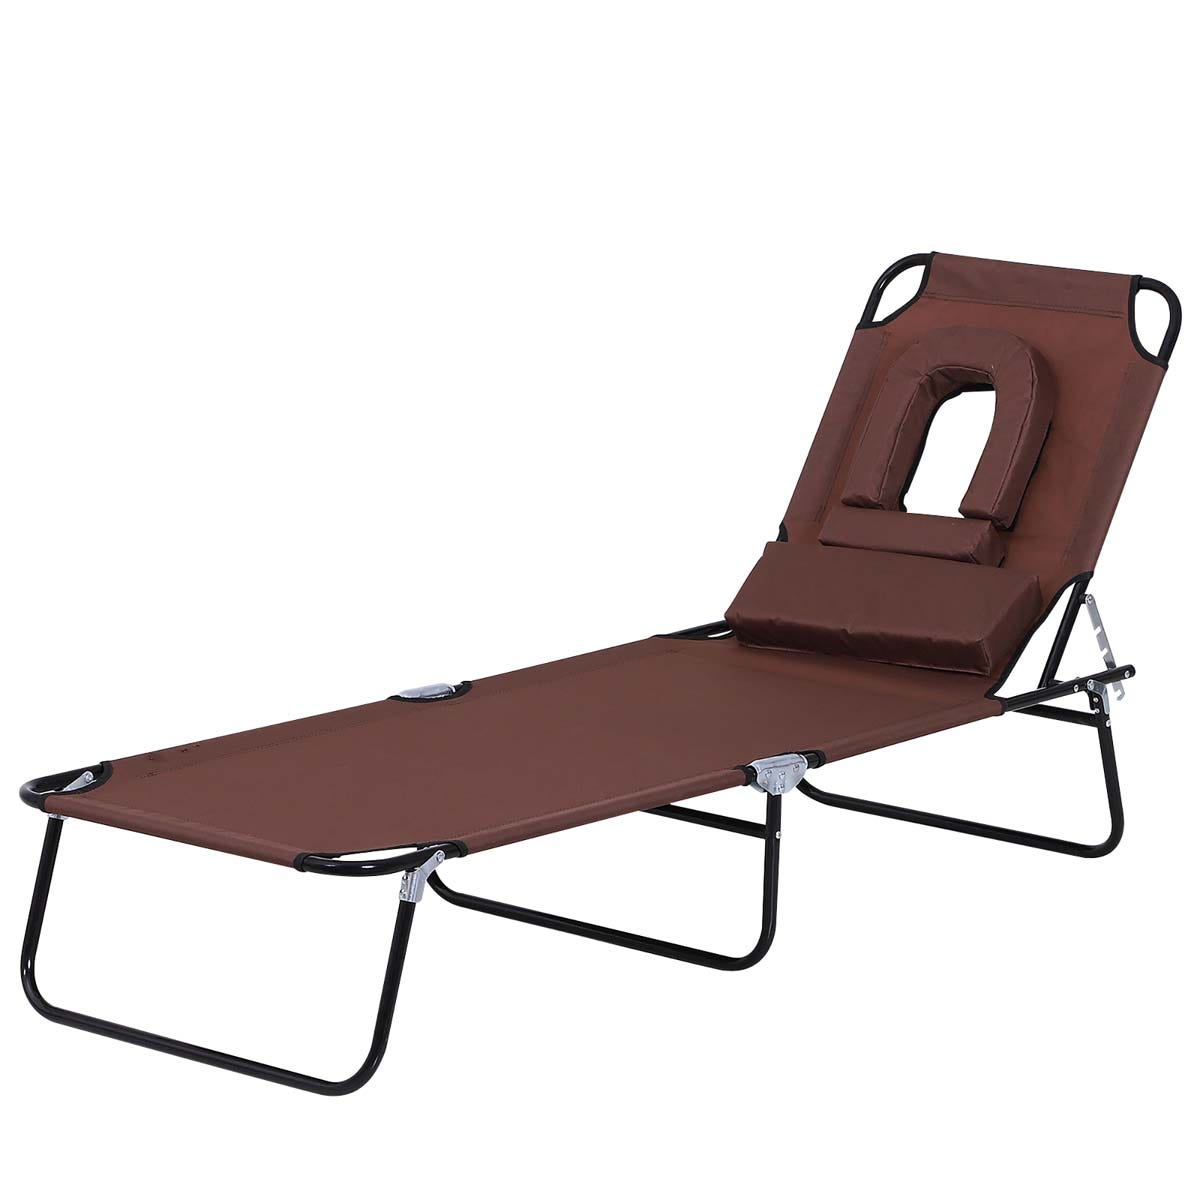 Outsunny Premium Folding Sun Lounger with Reading Hole - Brown